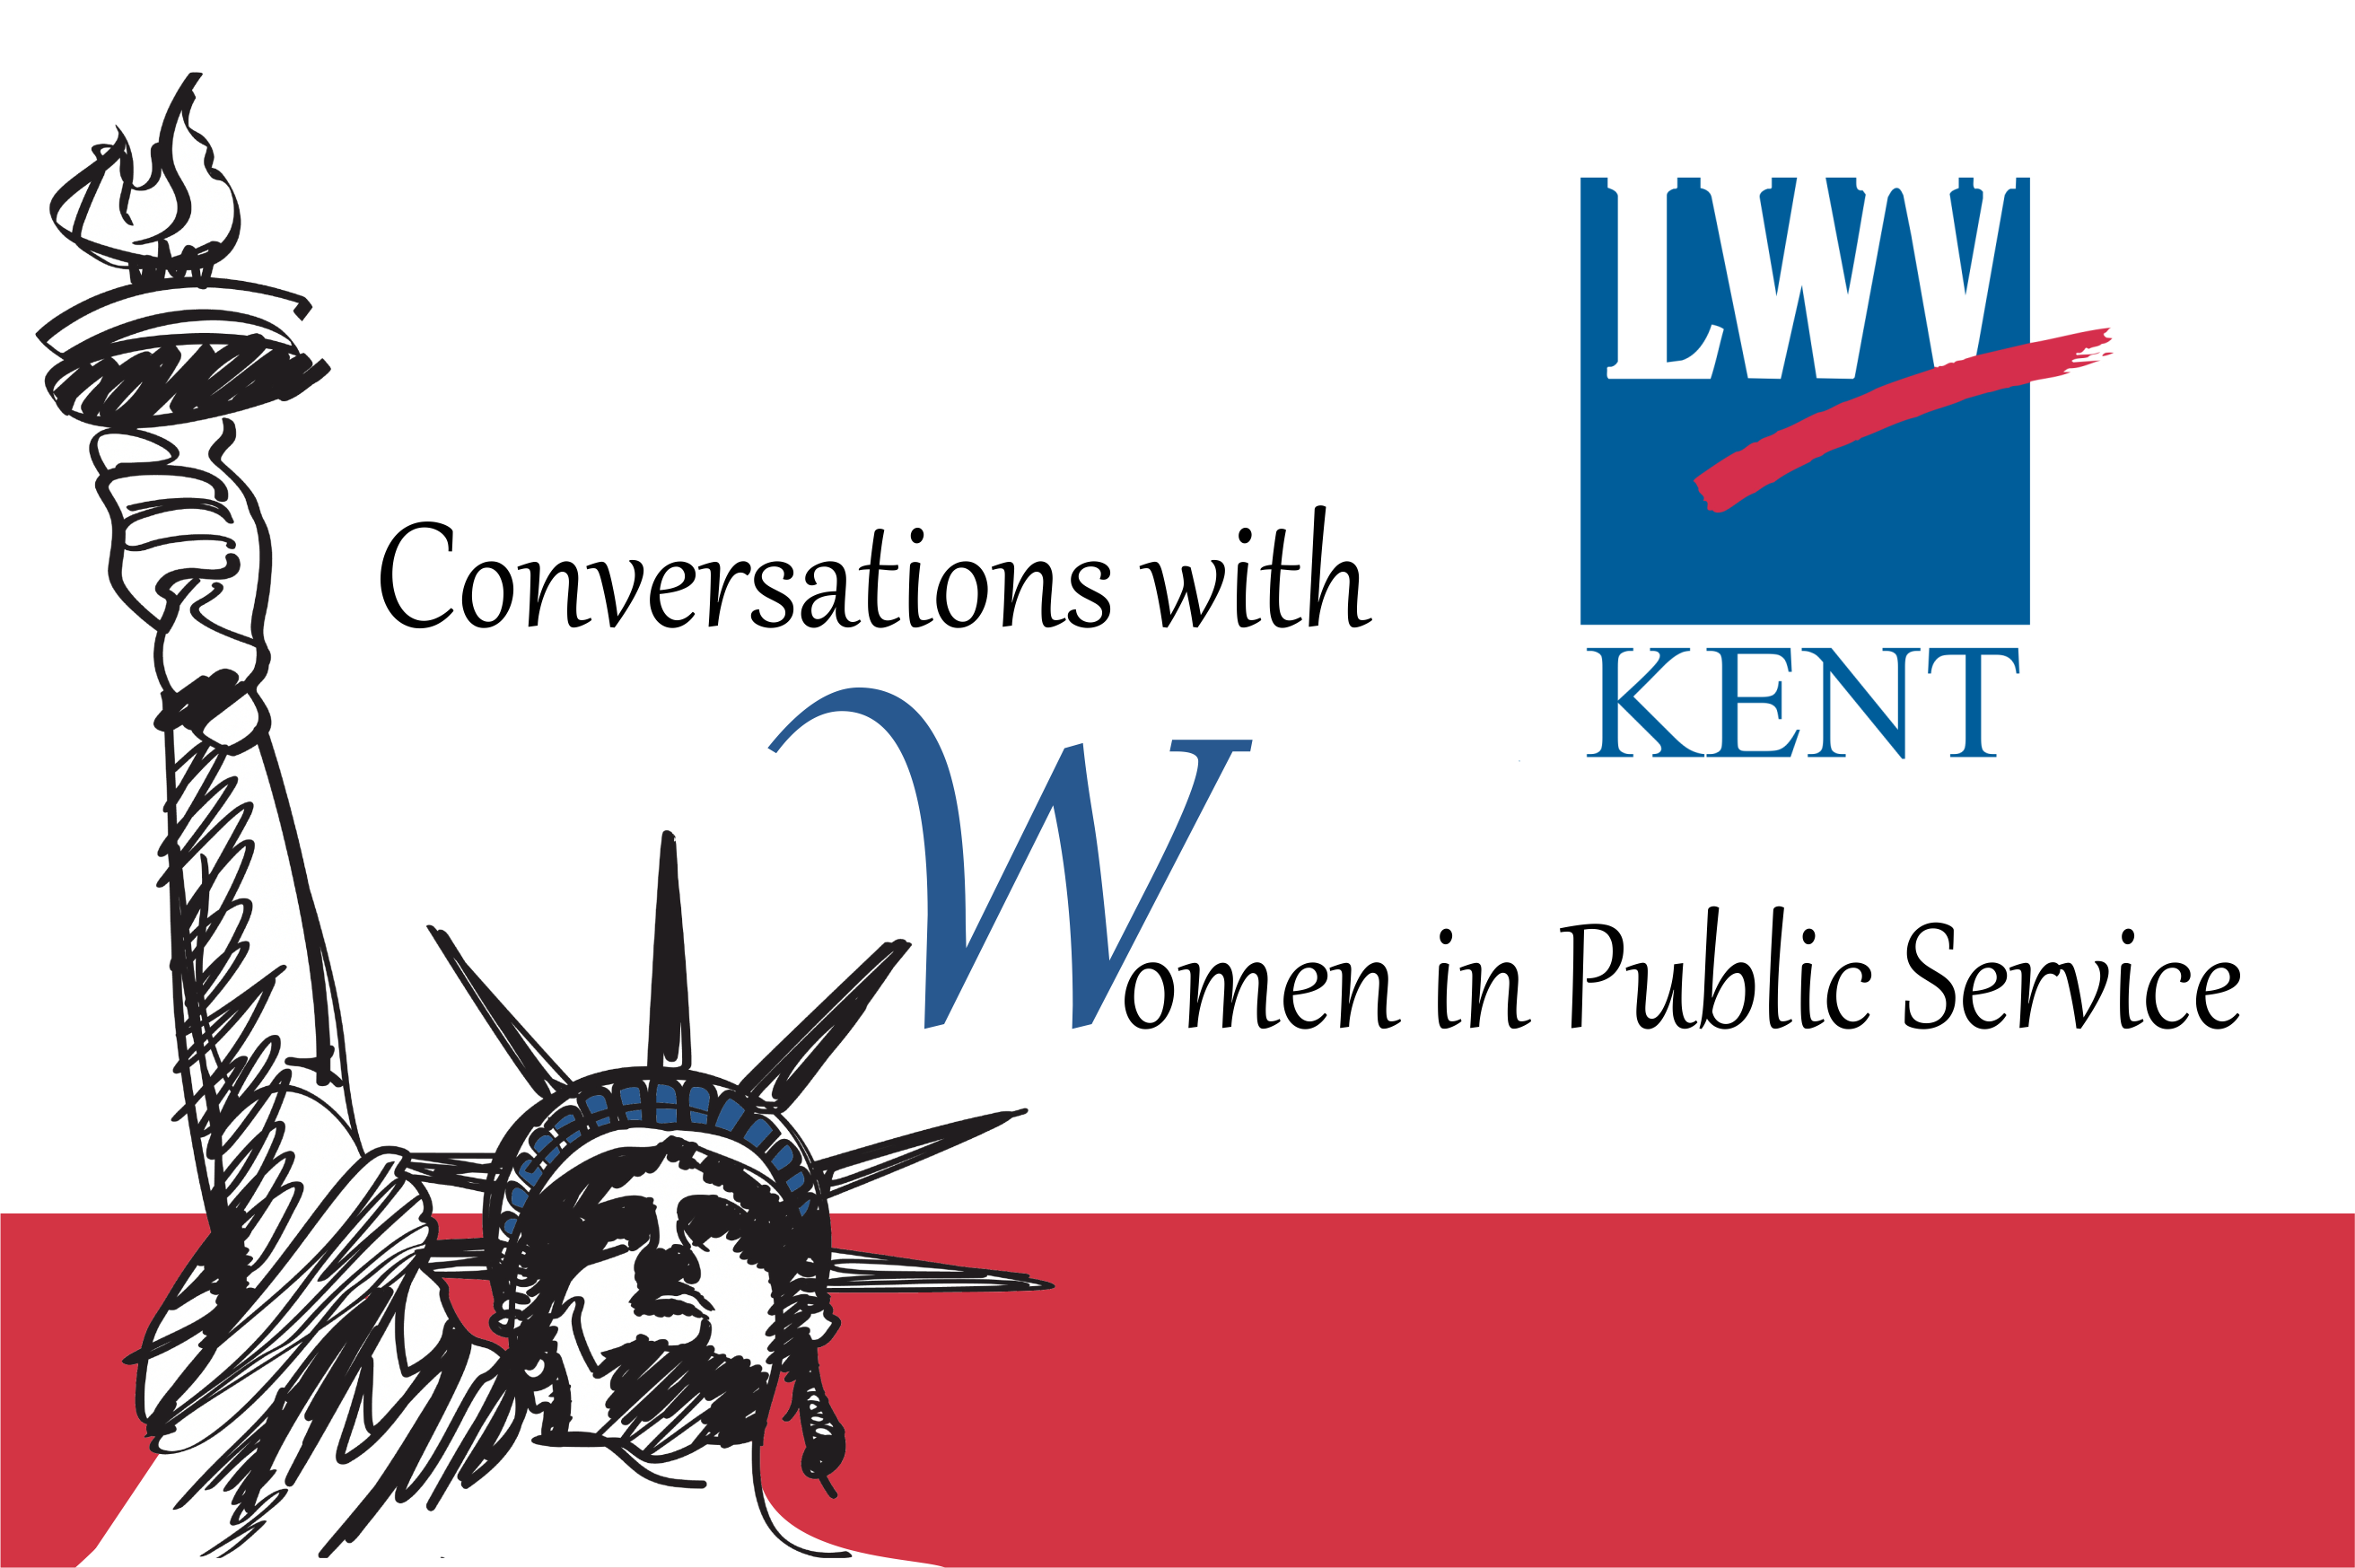 Conversations with Women in Public Service image